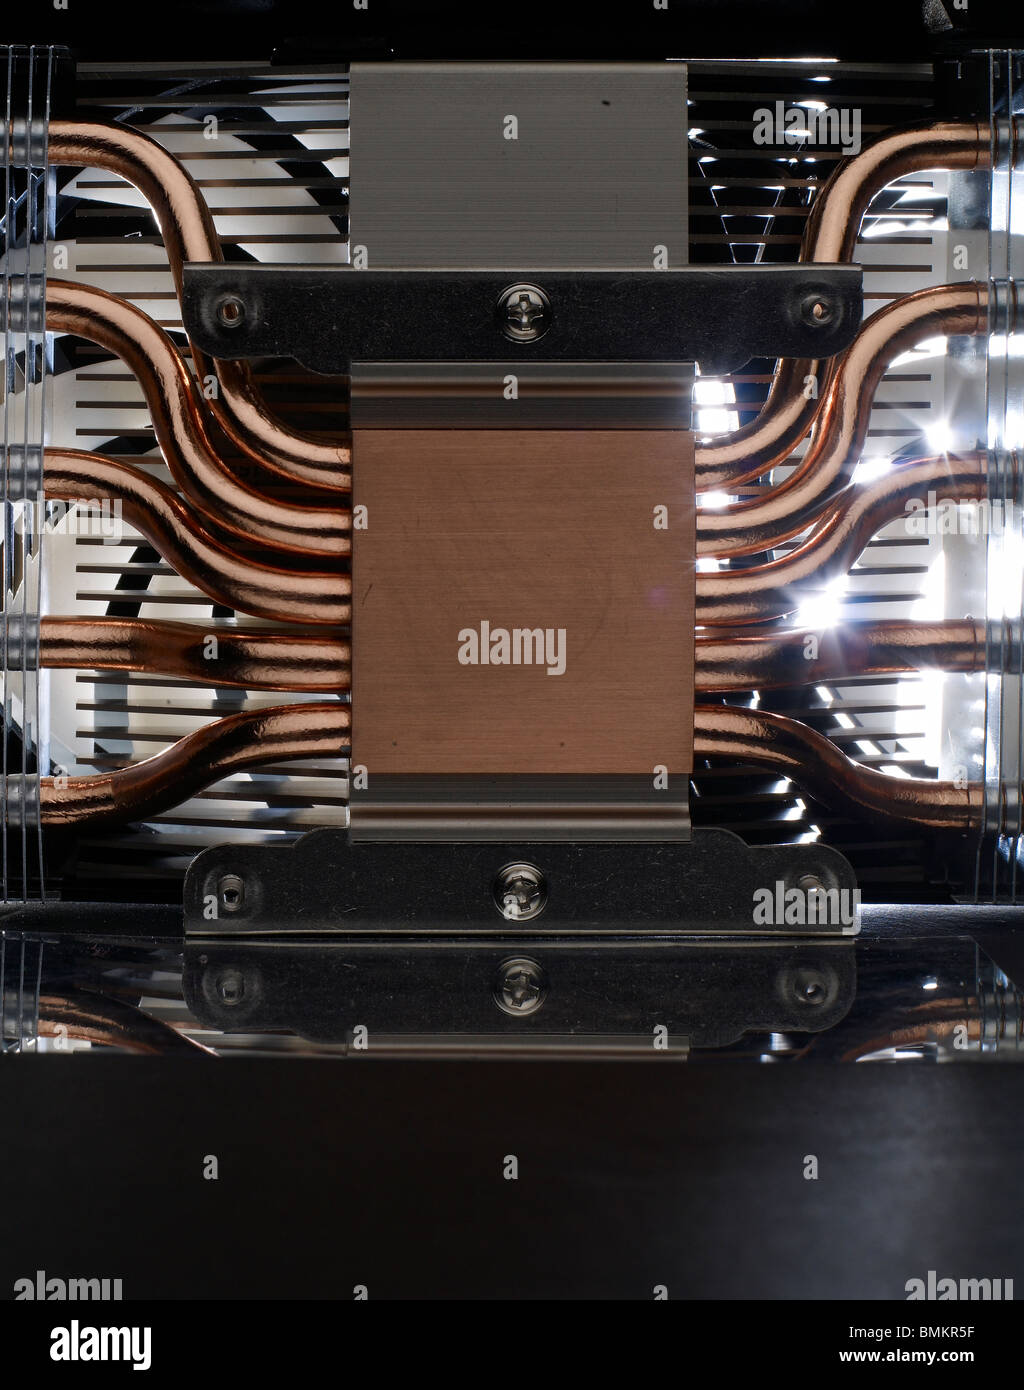 Computer Fans Stock Photos Images Alamy Wiring In Series Copper Metal Heat Sink And Of Liquid Cooled Card Image